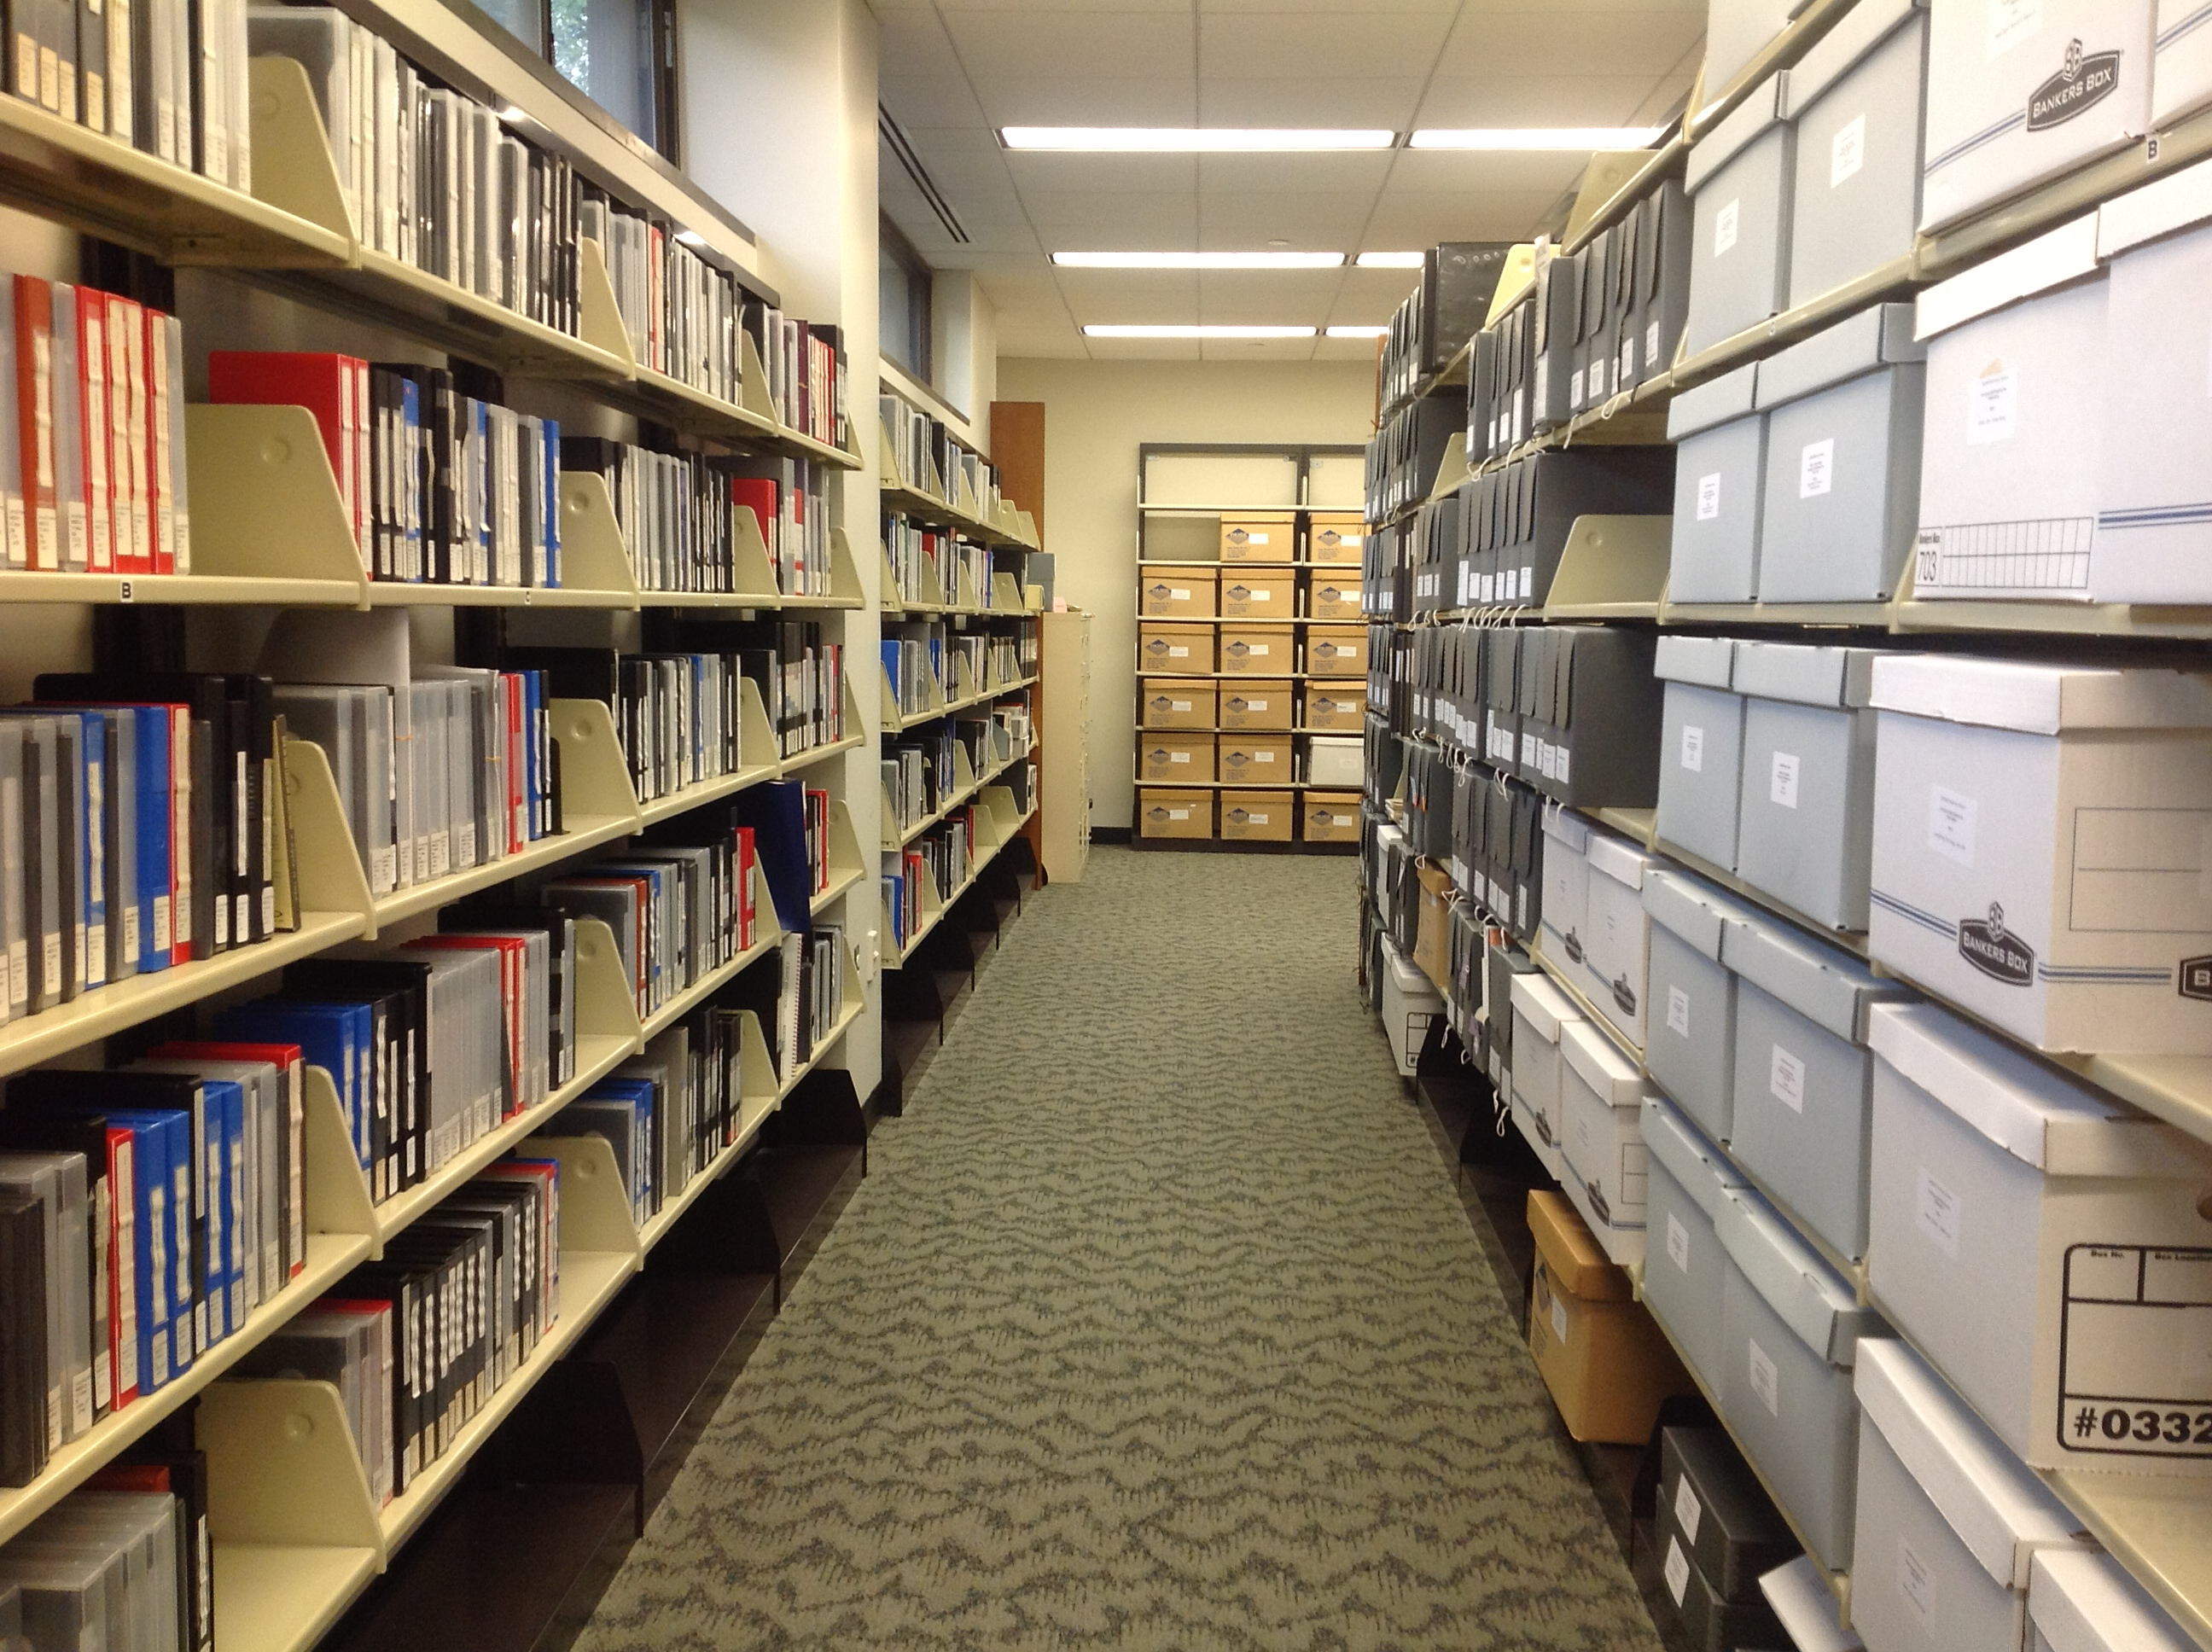 Finding Aids